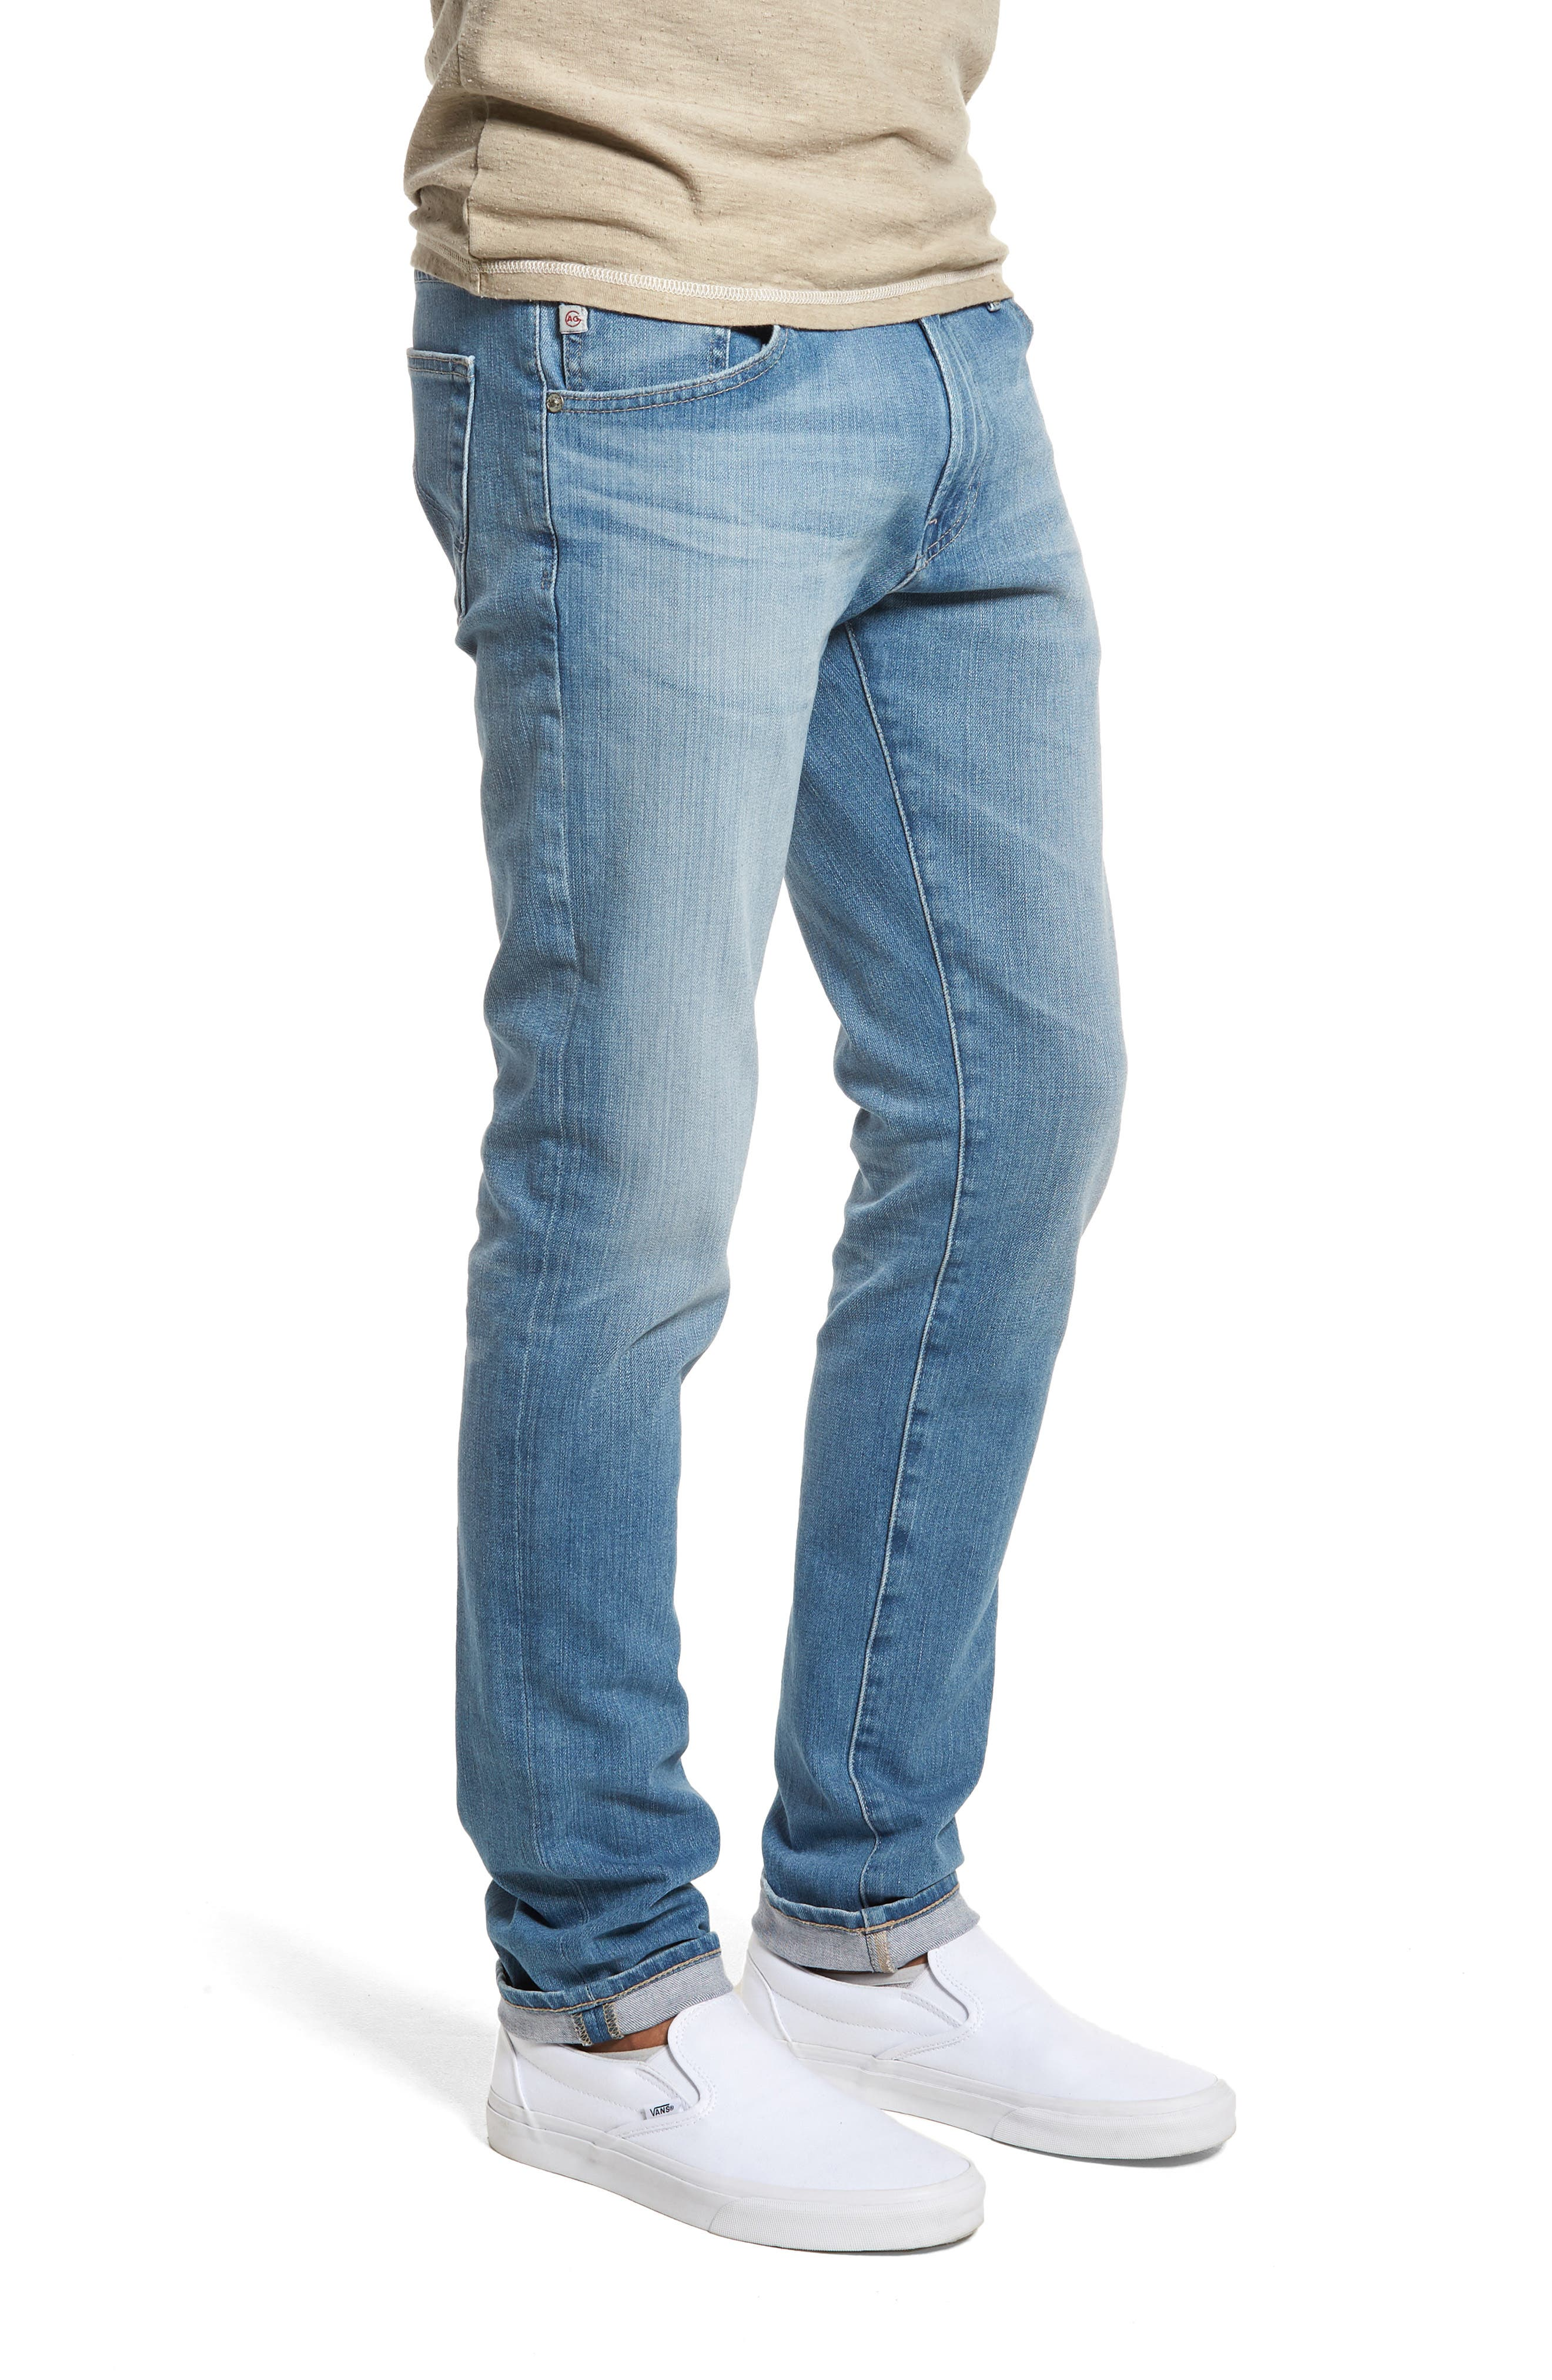 Dylan Skinny Fit Jeans,                             Alternate thumbnail 3, color,                             19 Years Channel